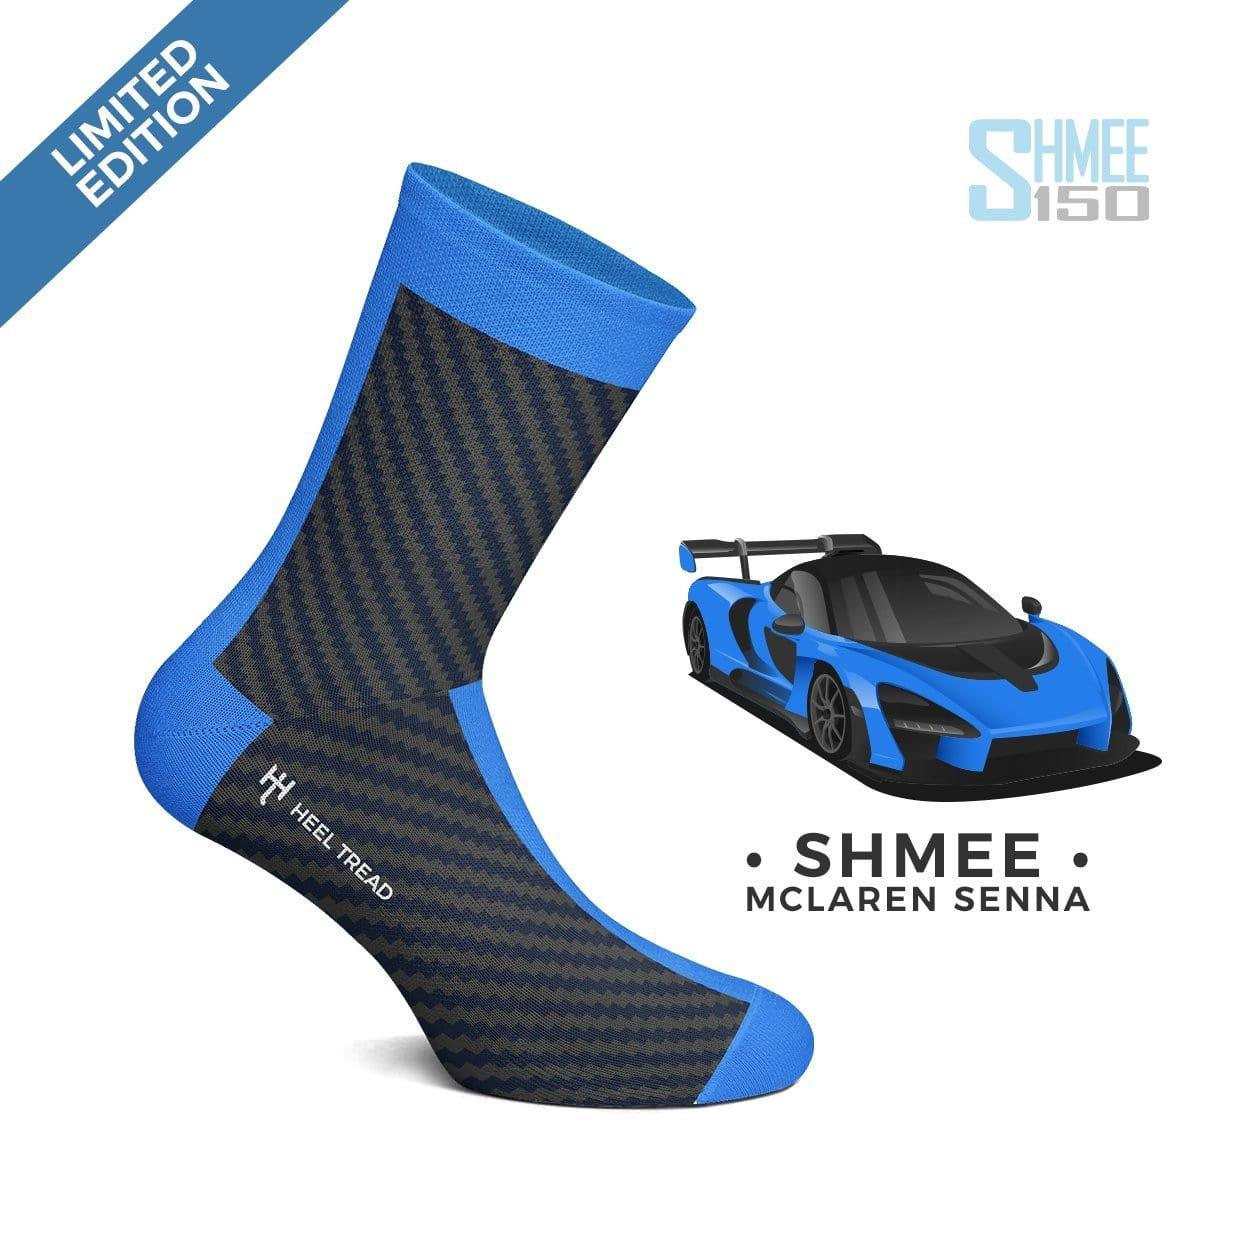 SHMEE'S SENNA SOCKS - Corleon